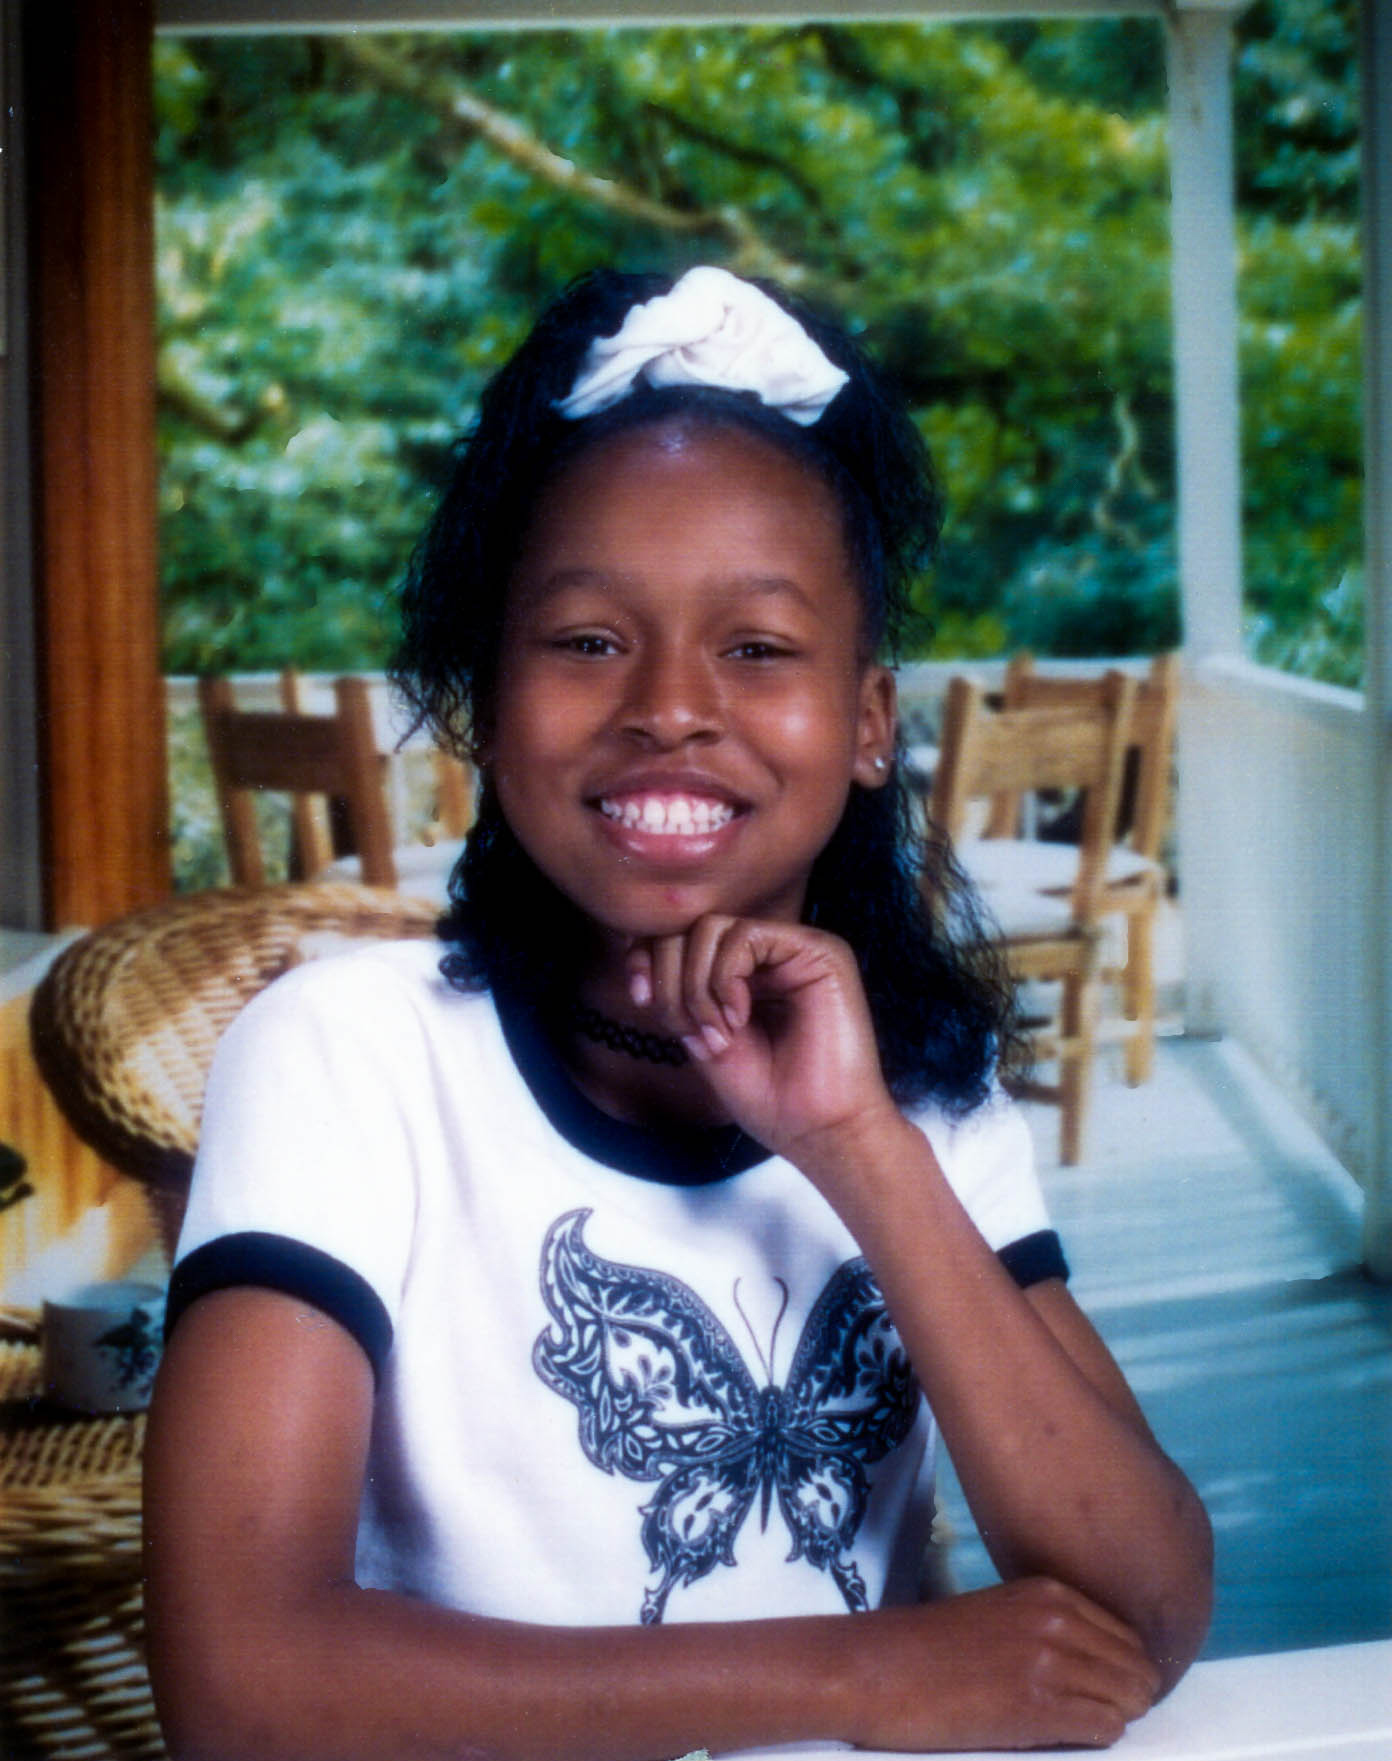 A photo of Jassmine McBride as a young girl.